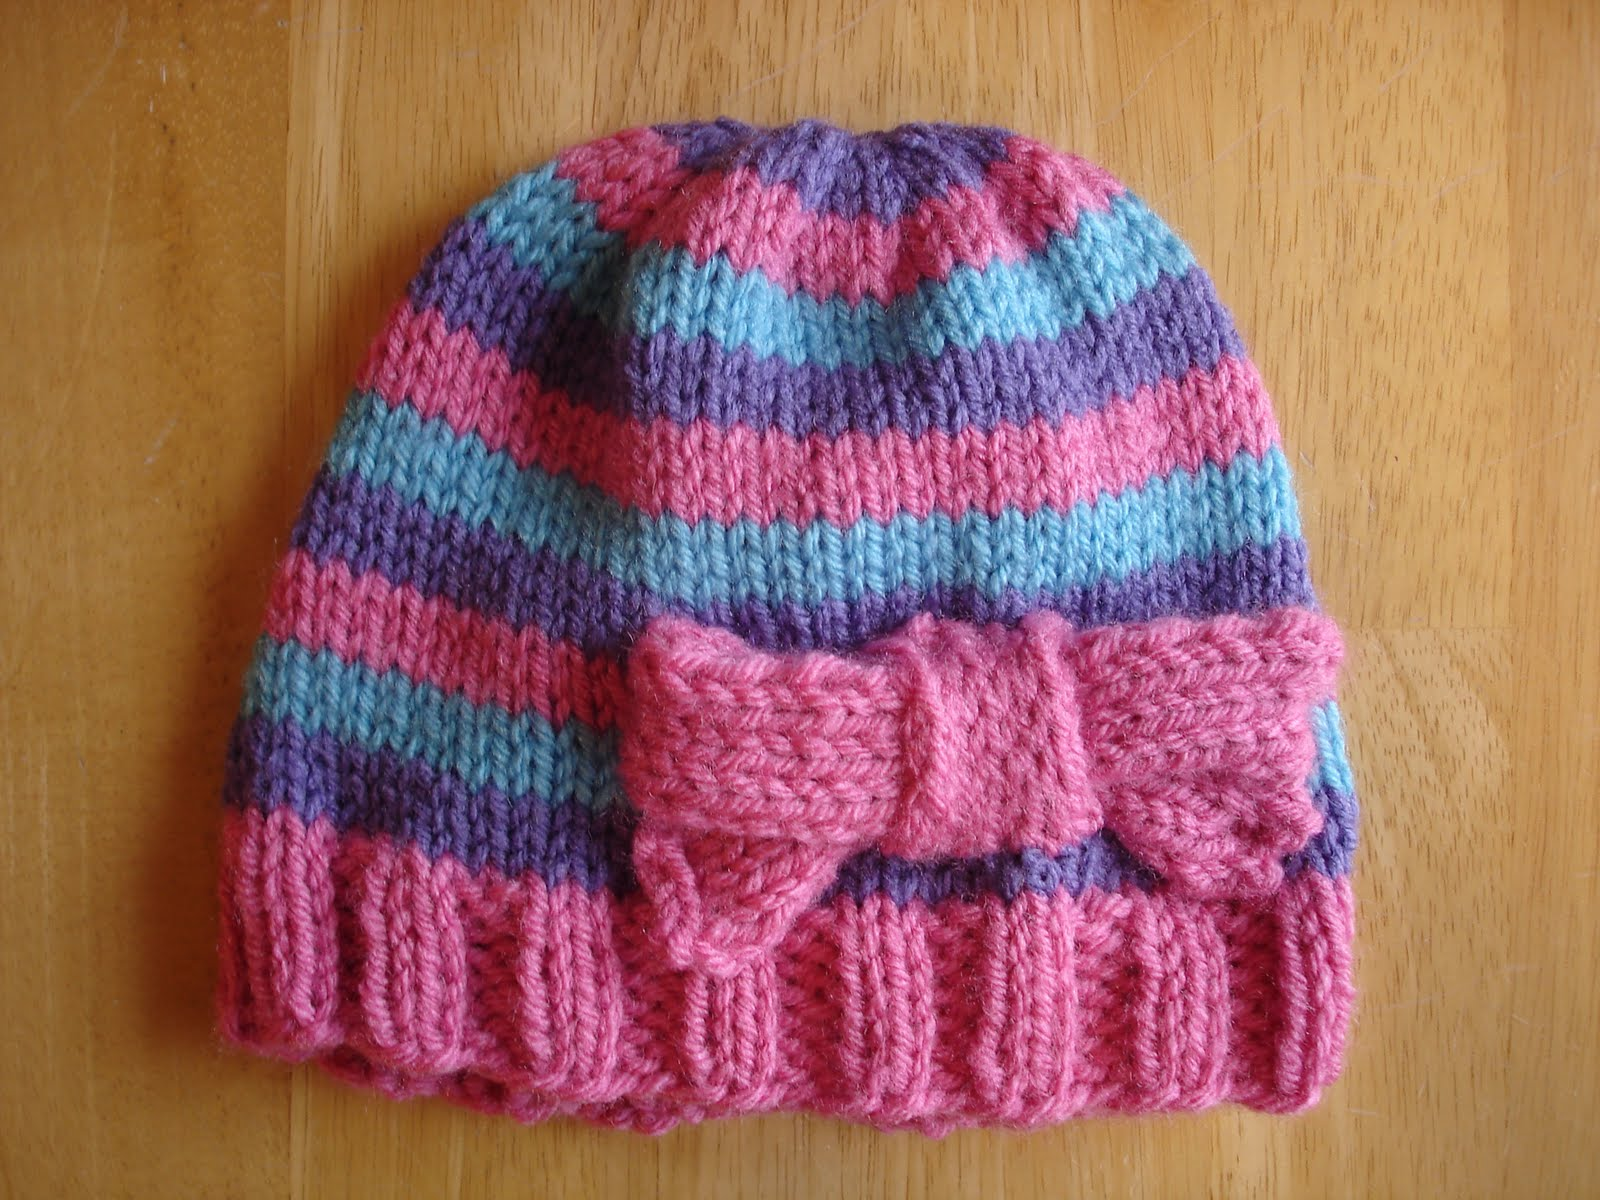 Free Patterns Knitting : Fiber Flux: Free Knitting Pattern...Super Pink Toddler Hat!